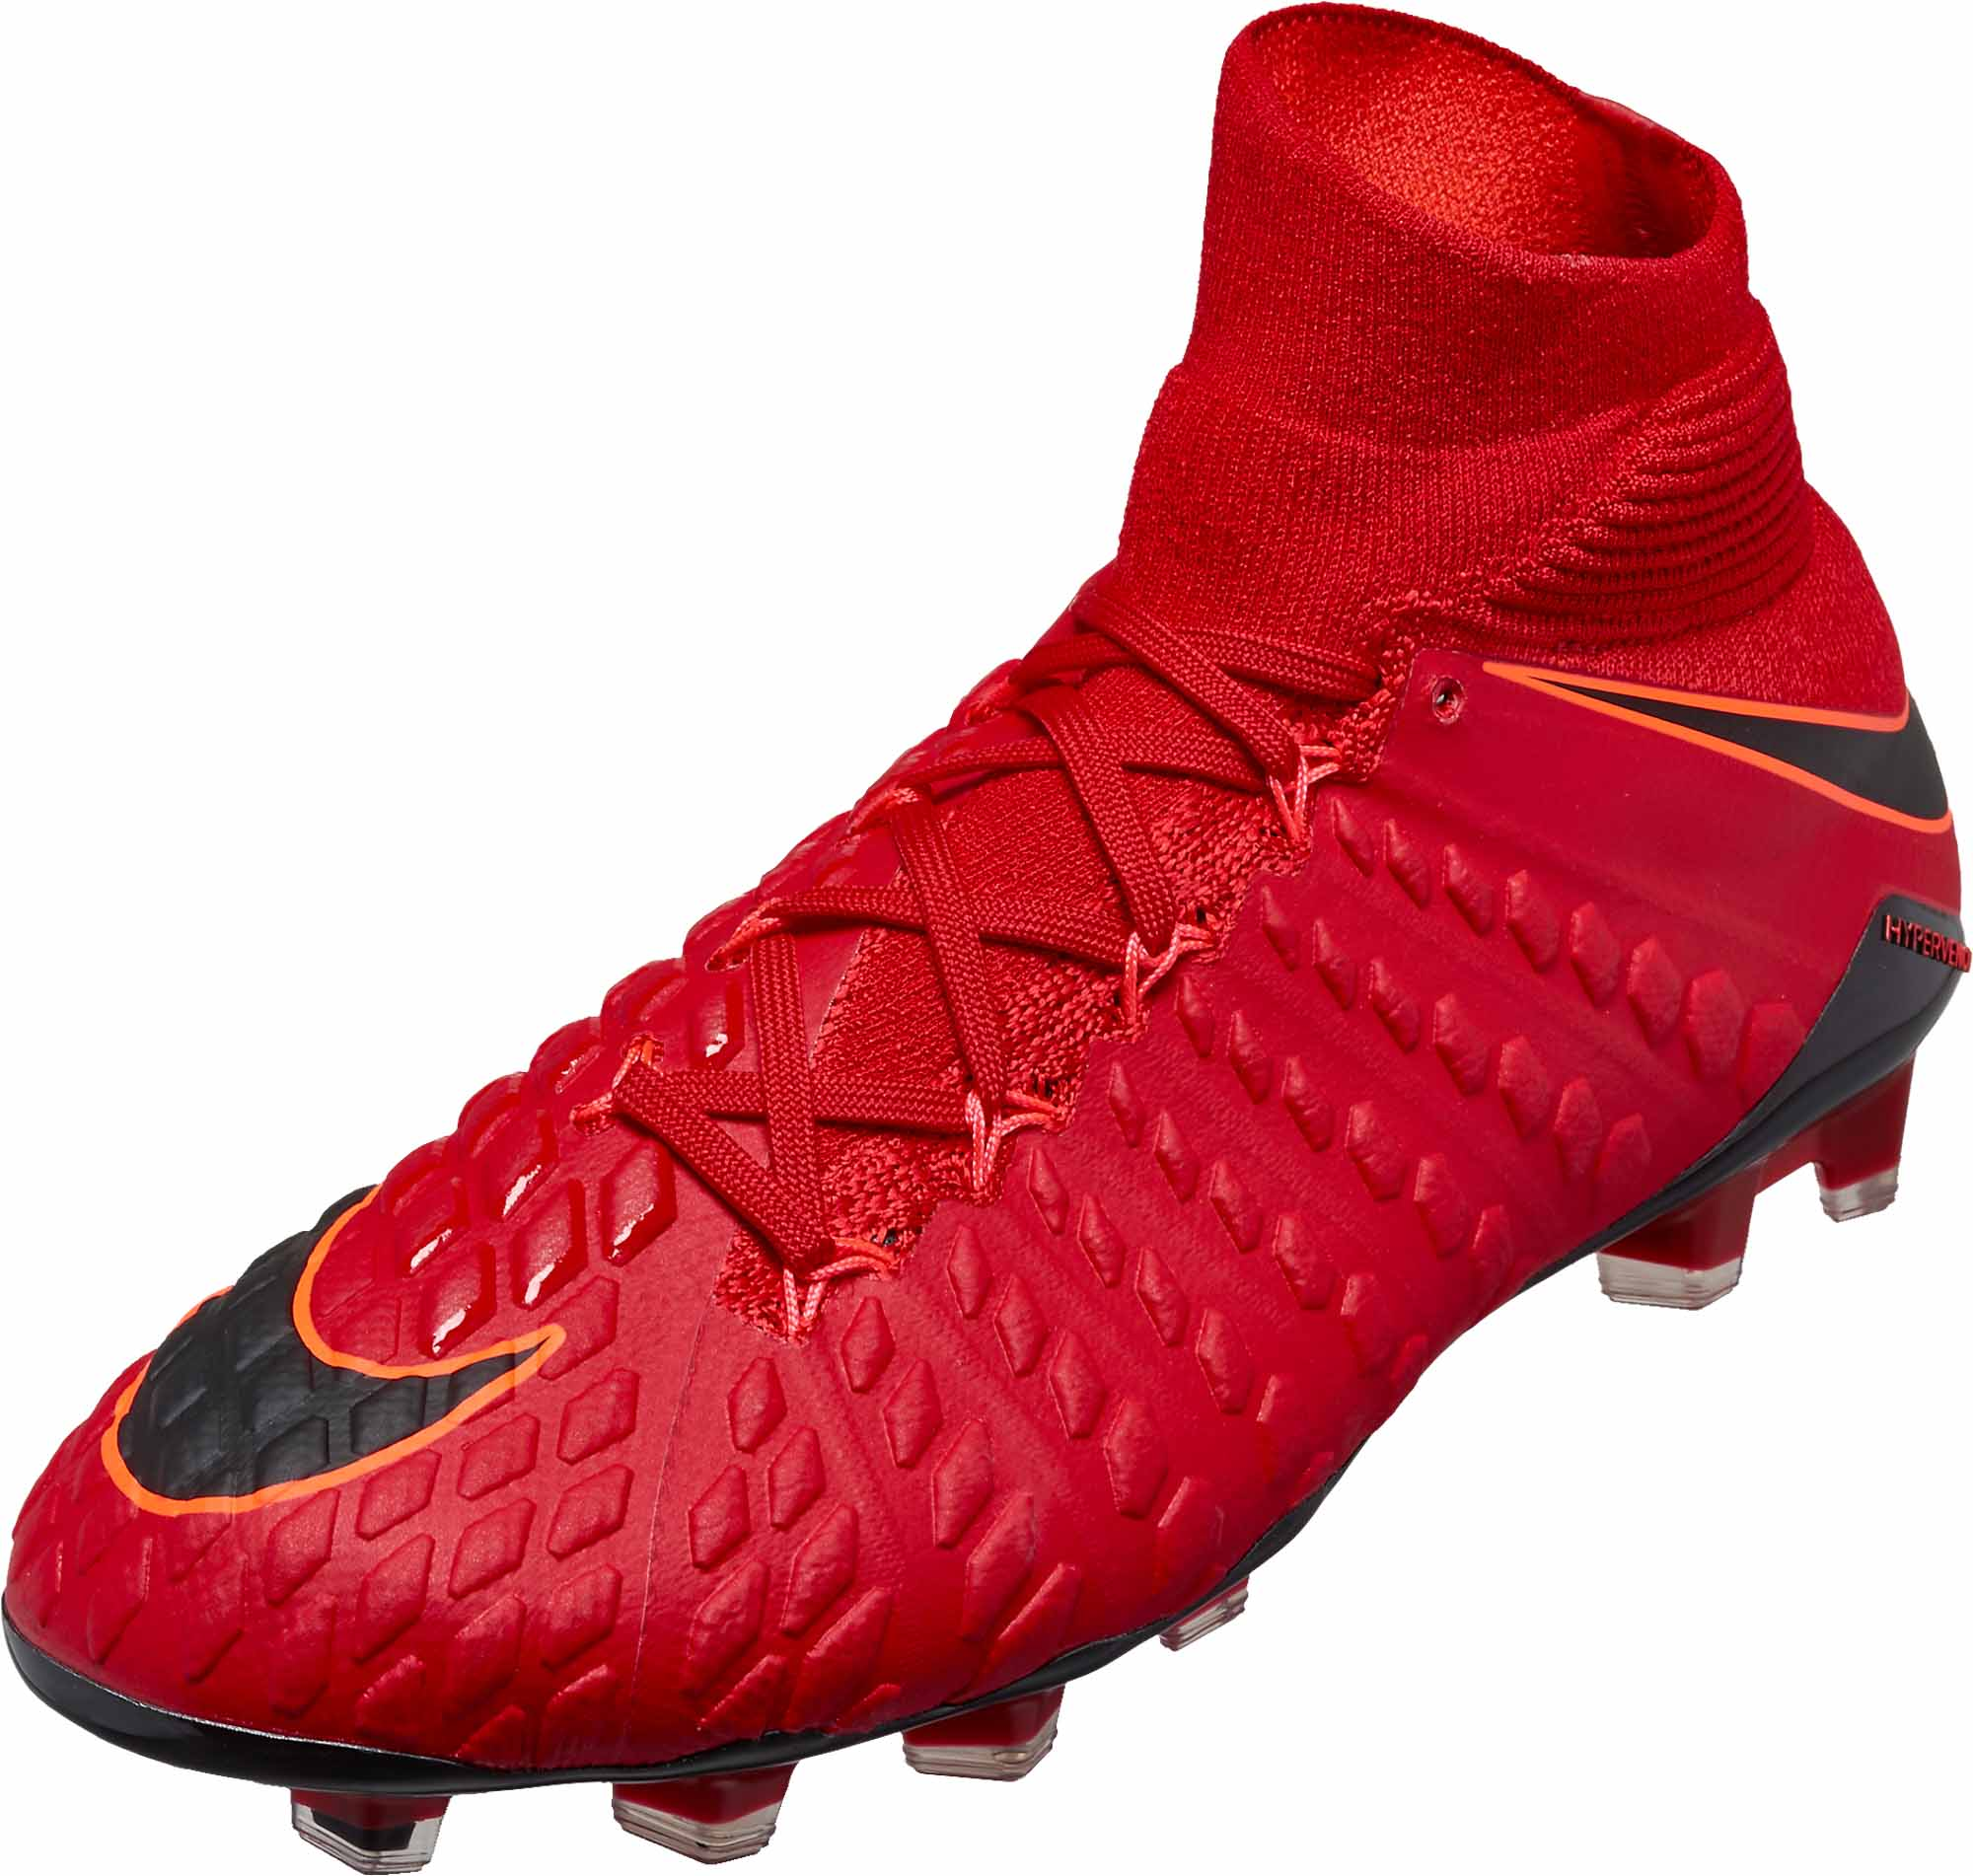 Nike Hypervenom Phantom III DF FG - University Red  Black -